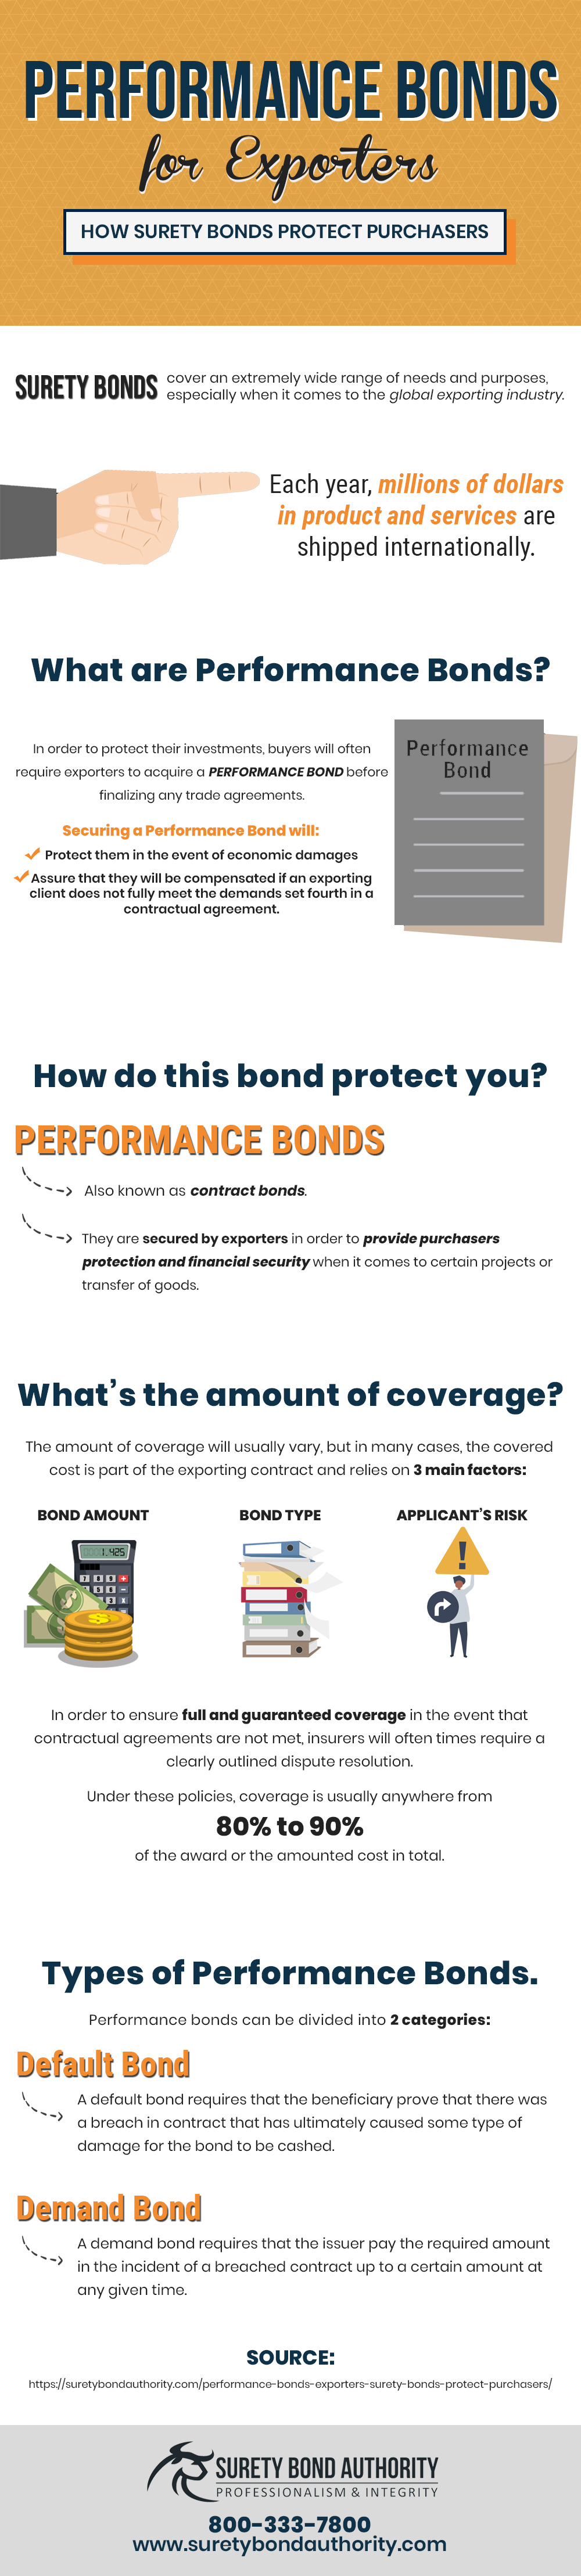 Performance Bonds Infographic